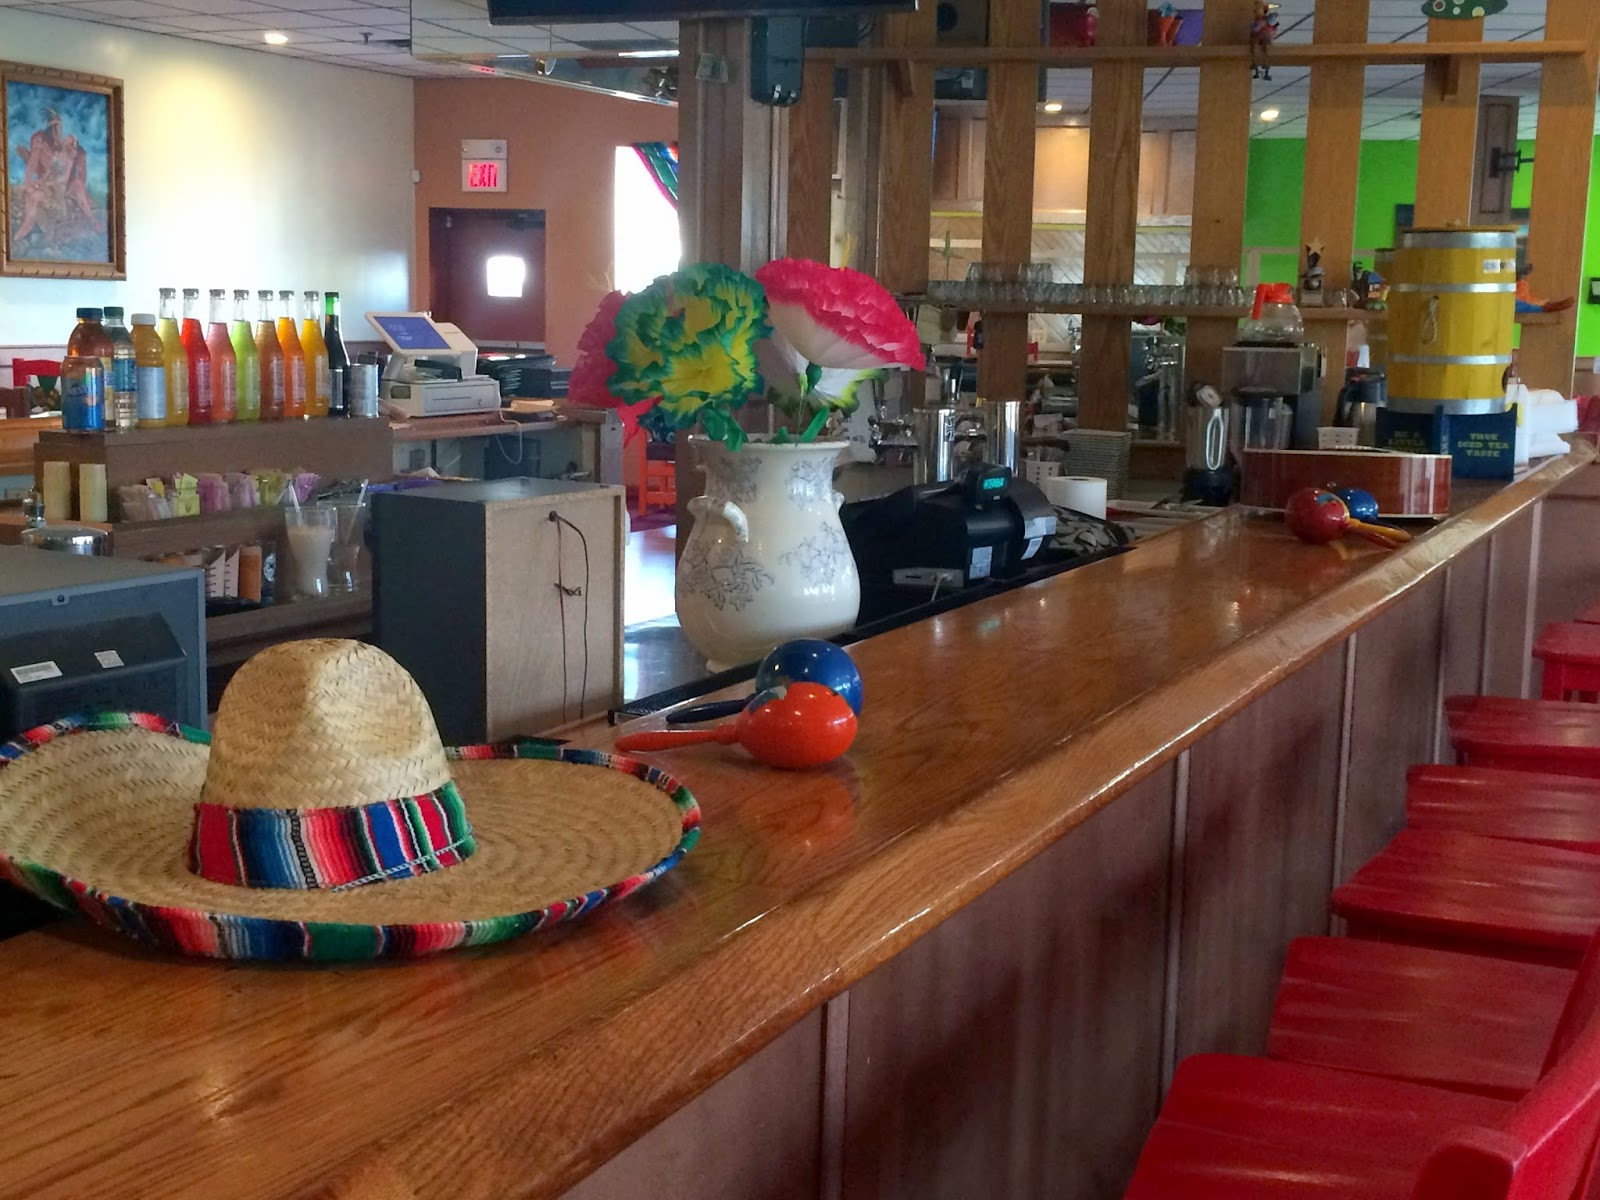 Mexican decorations for restaurants - The Cheerful D Cor Is A Refreshing Change From The Dark Bar That Was Once In This Location Mismatched Chairs In Vivid Hues Have Symbols Of Suns Maracas